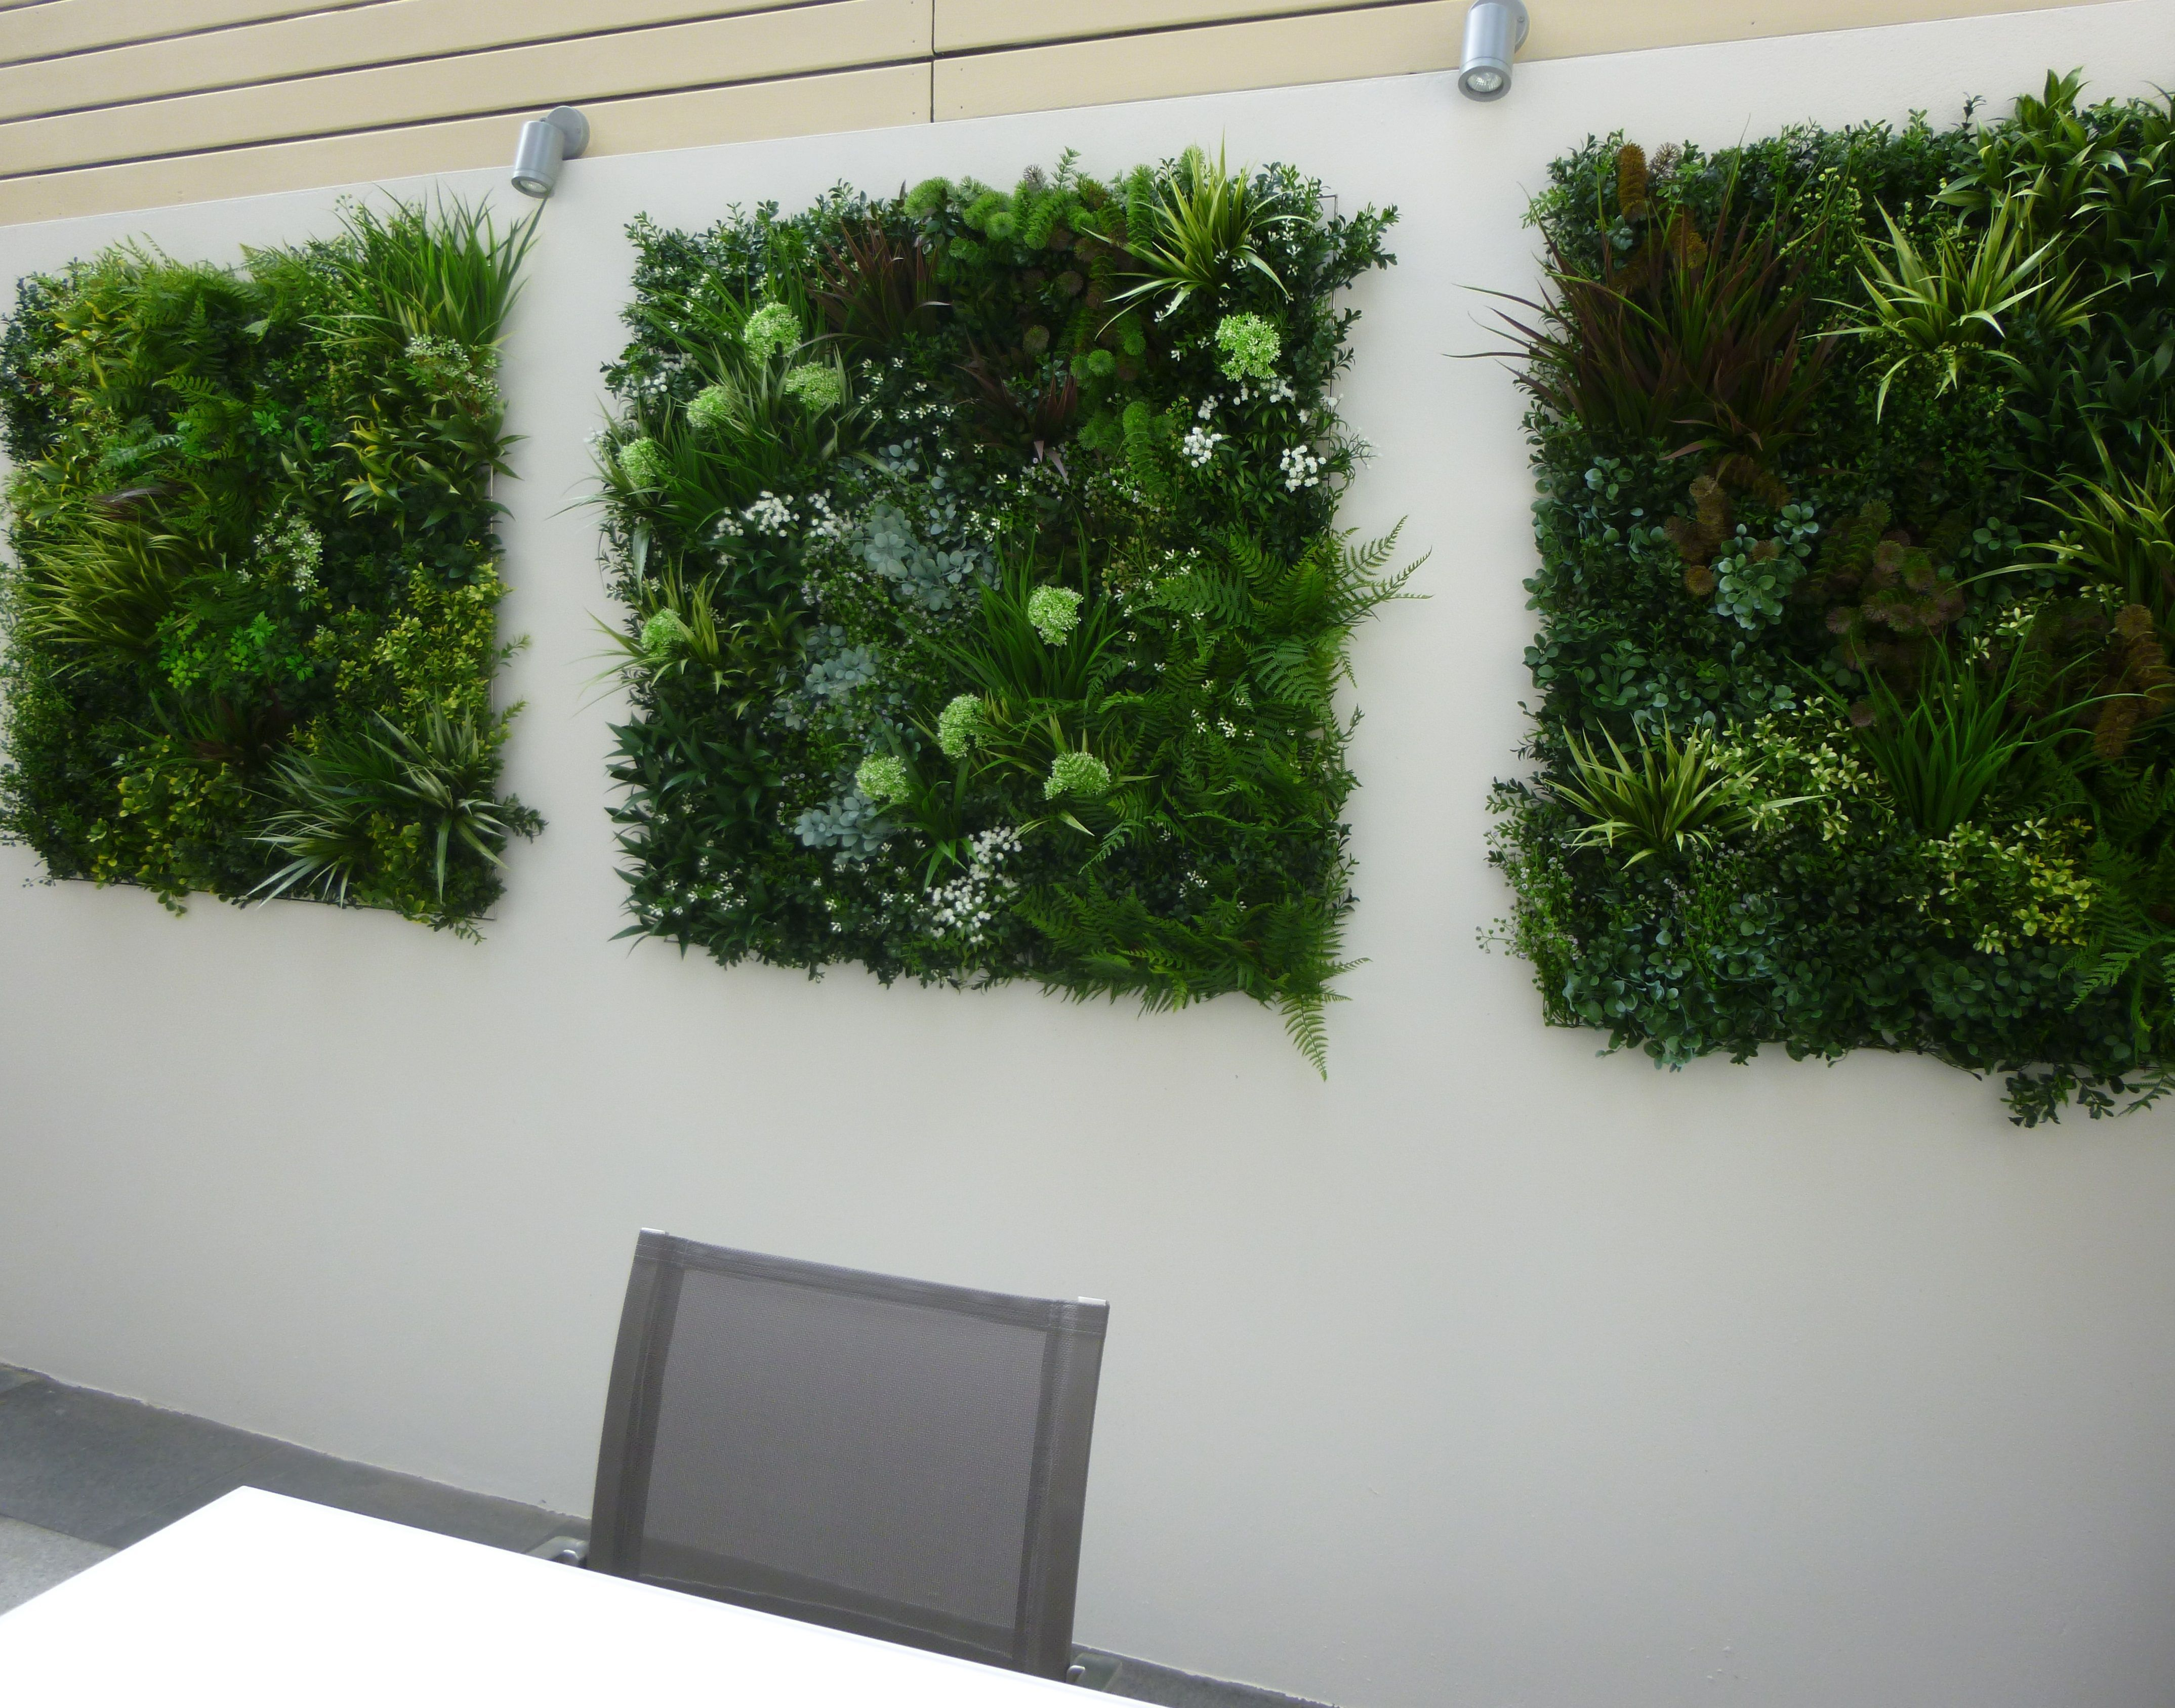 Dumbfounding ideas artificial plants wall artificial plants indoor